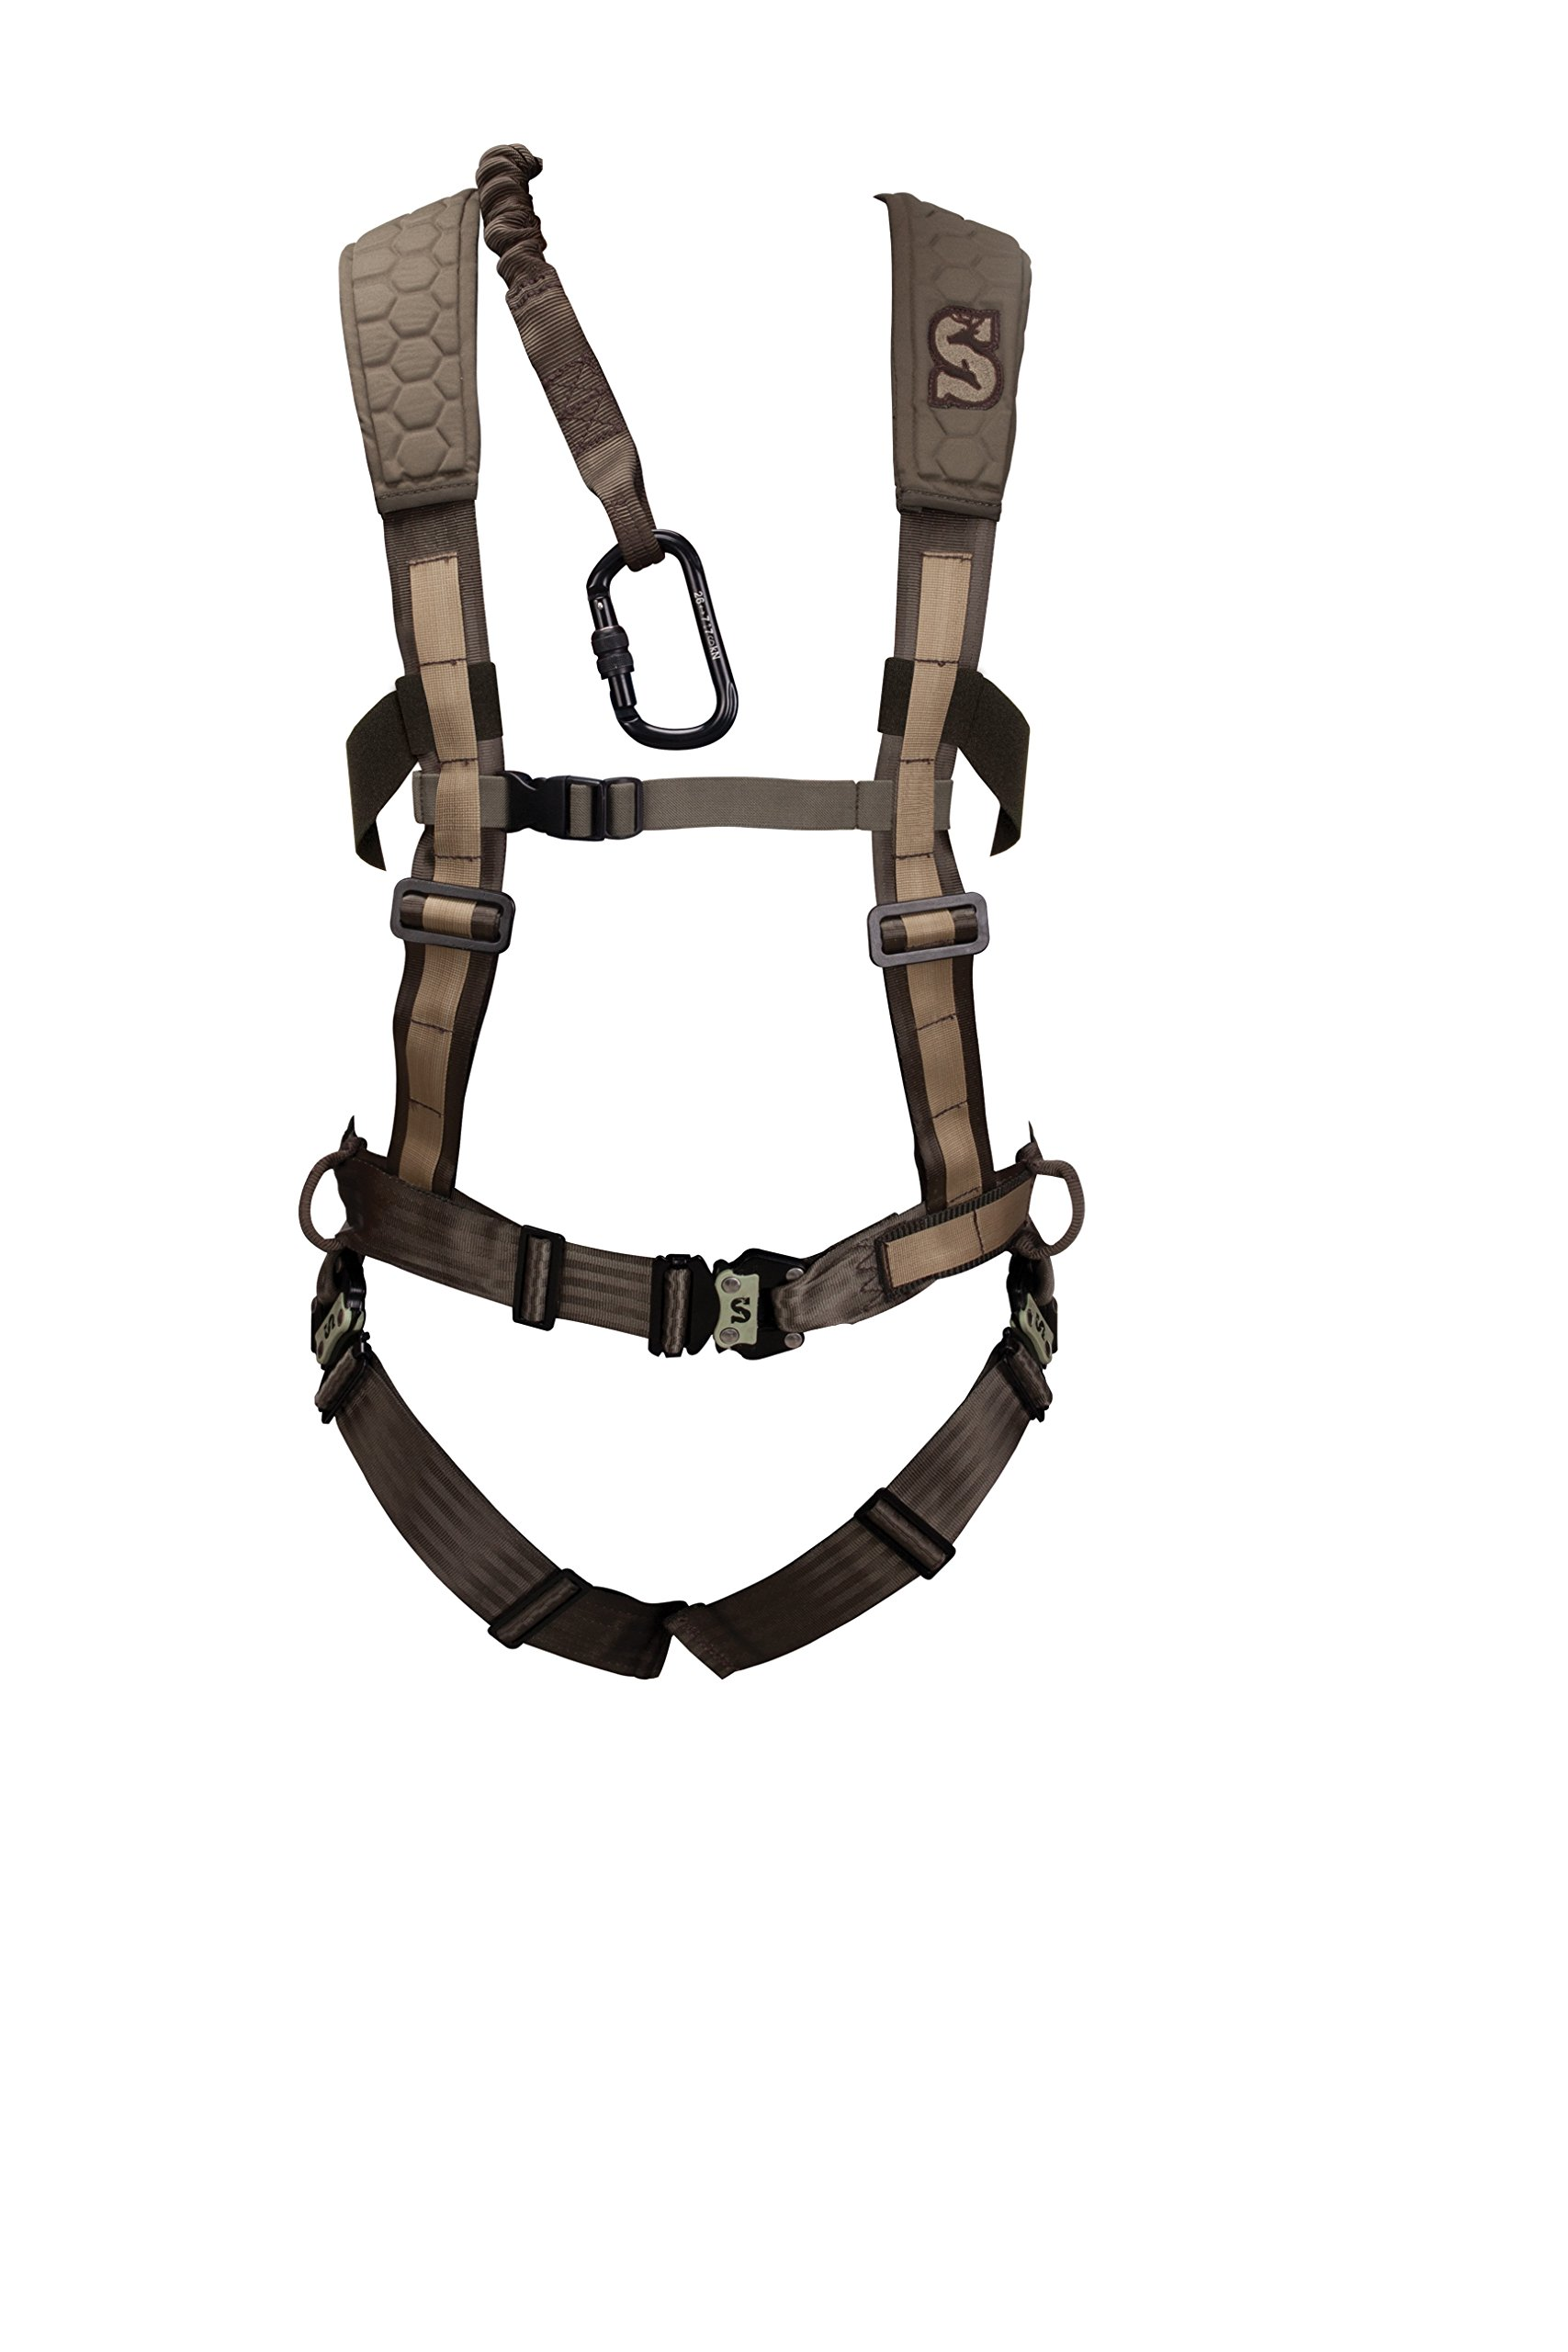 Summit Treestands Men's Pro Safety Harness, Large by Summit Treestands